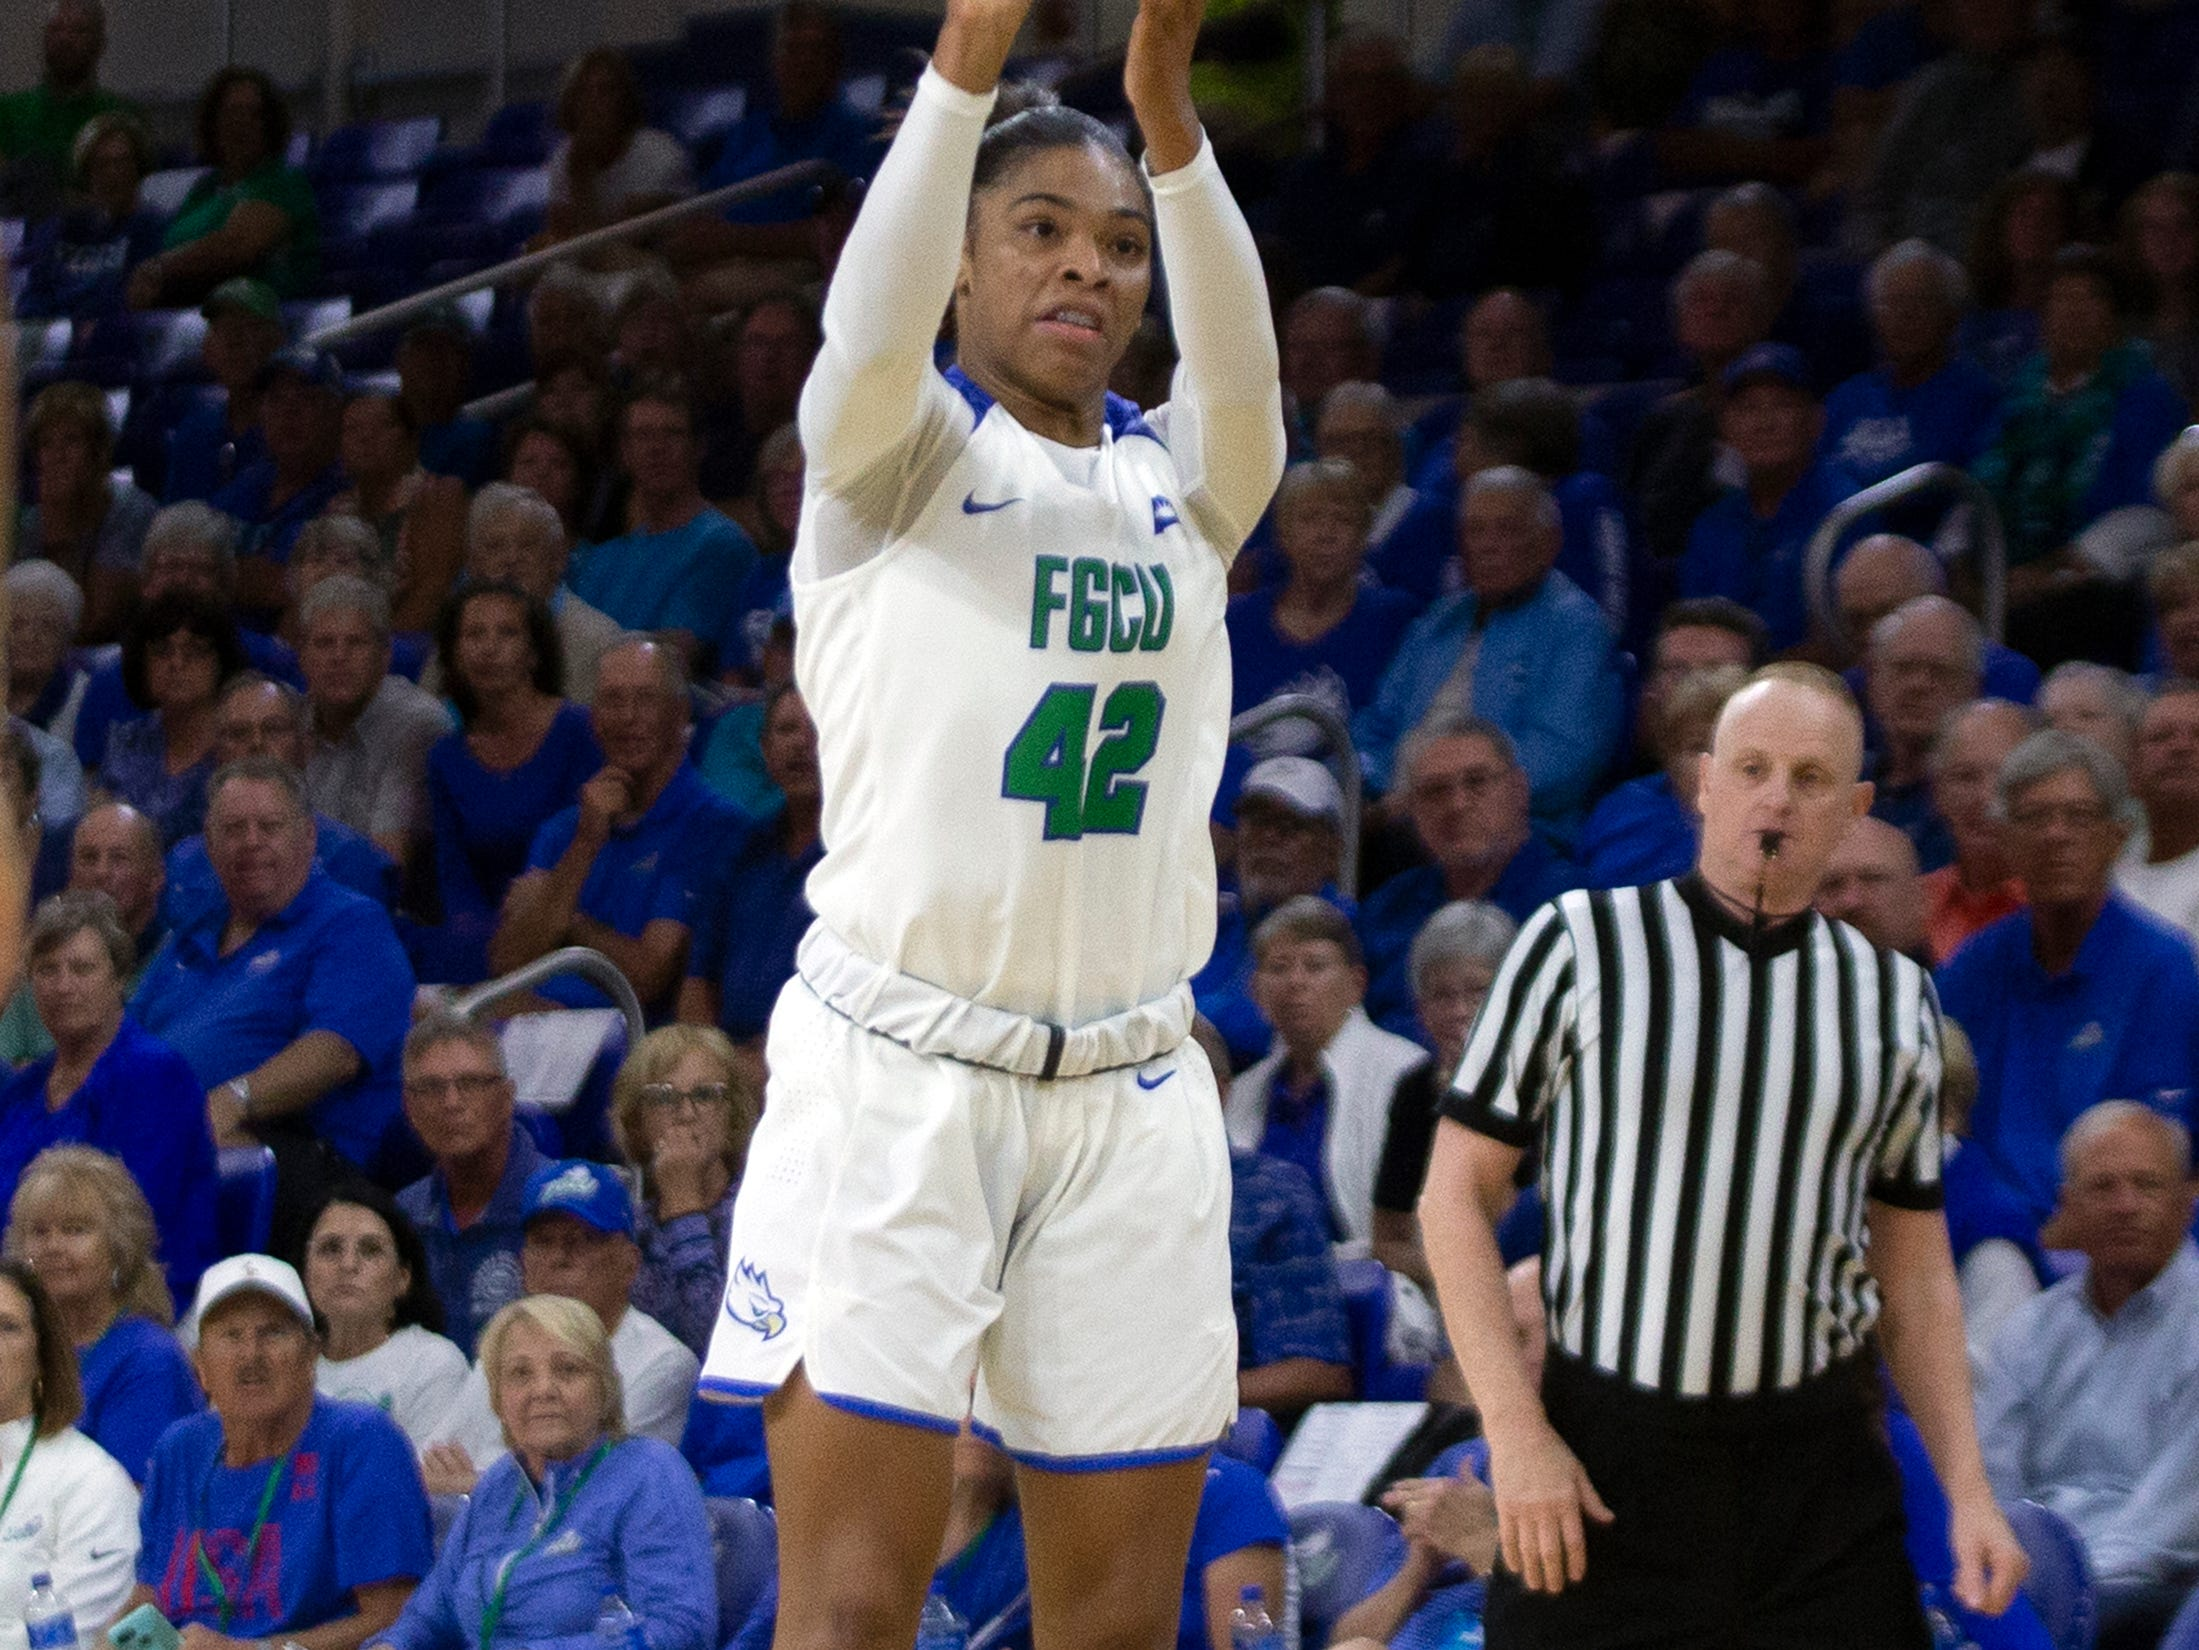 Florida Gulf Coast University's Tytionia Adderly attempts a 3-pointer against Kennesaw State, Wednesday, March 13, 2019, at Florida Gulf Coast University's Alico Arena.